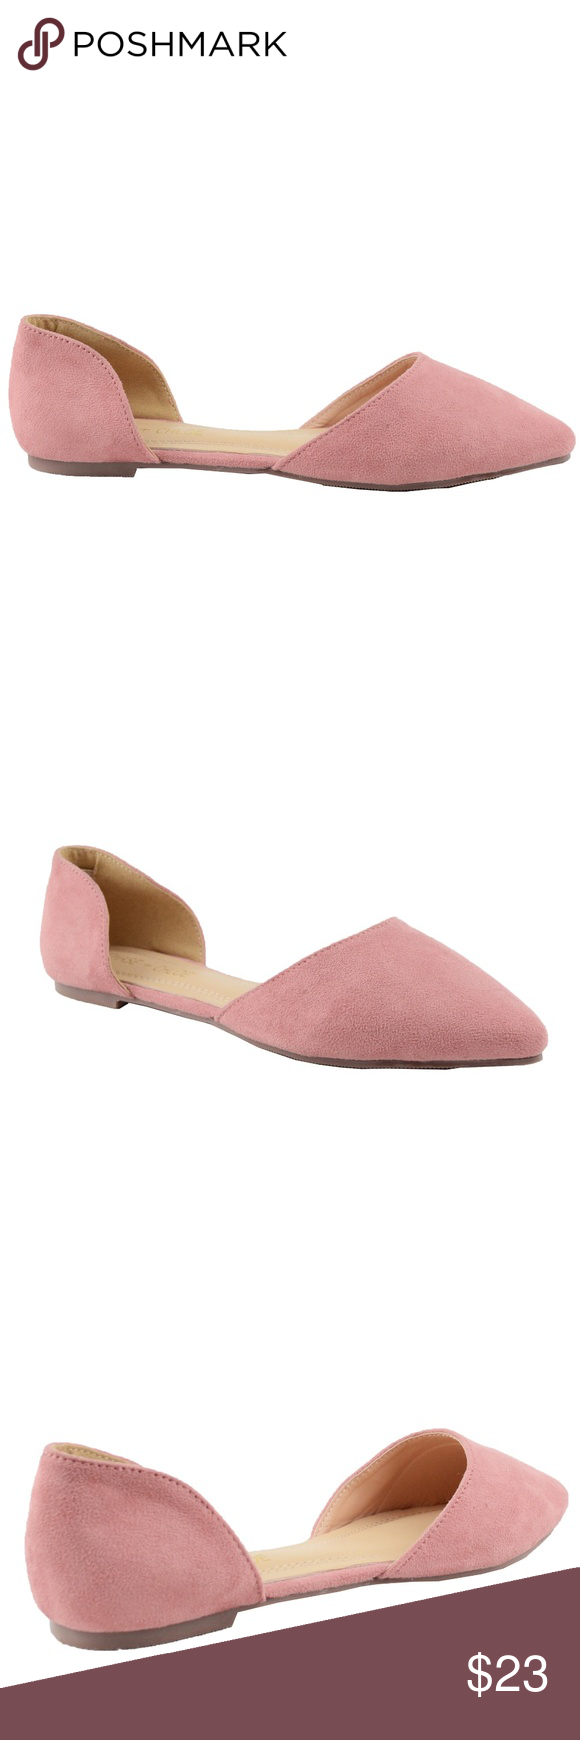 59ac1ca3a4 Women s D orsay Pointed Toe Mauve Flat Ballet Pointed Toe Covered D orsay  Slip On Women s Flat Sandal Very Comfy Flat for Spring Imported Faux Suede  Chase + ...